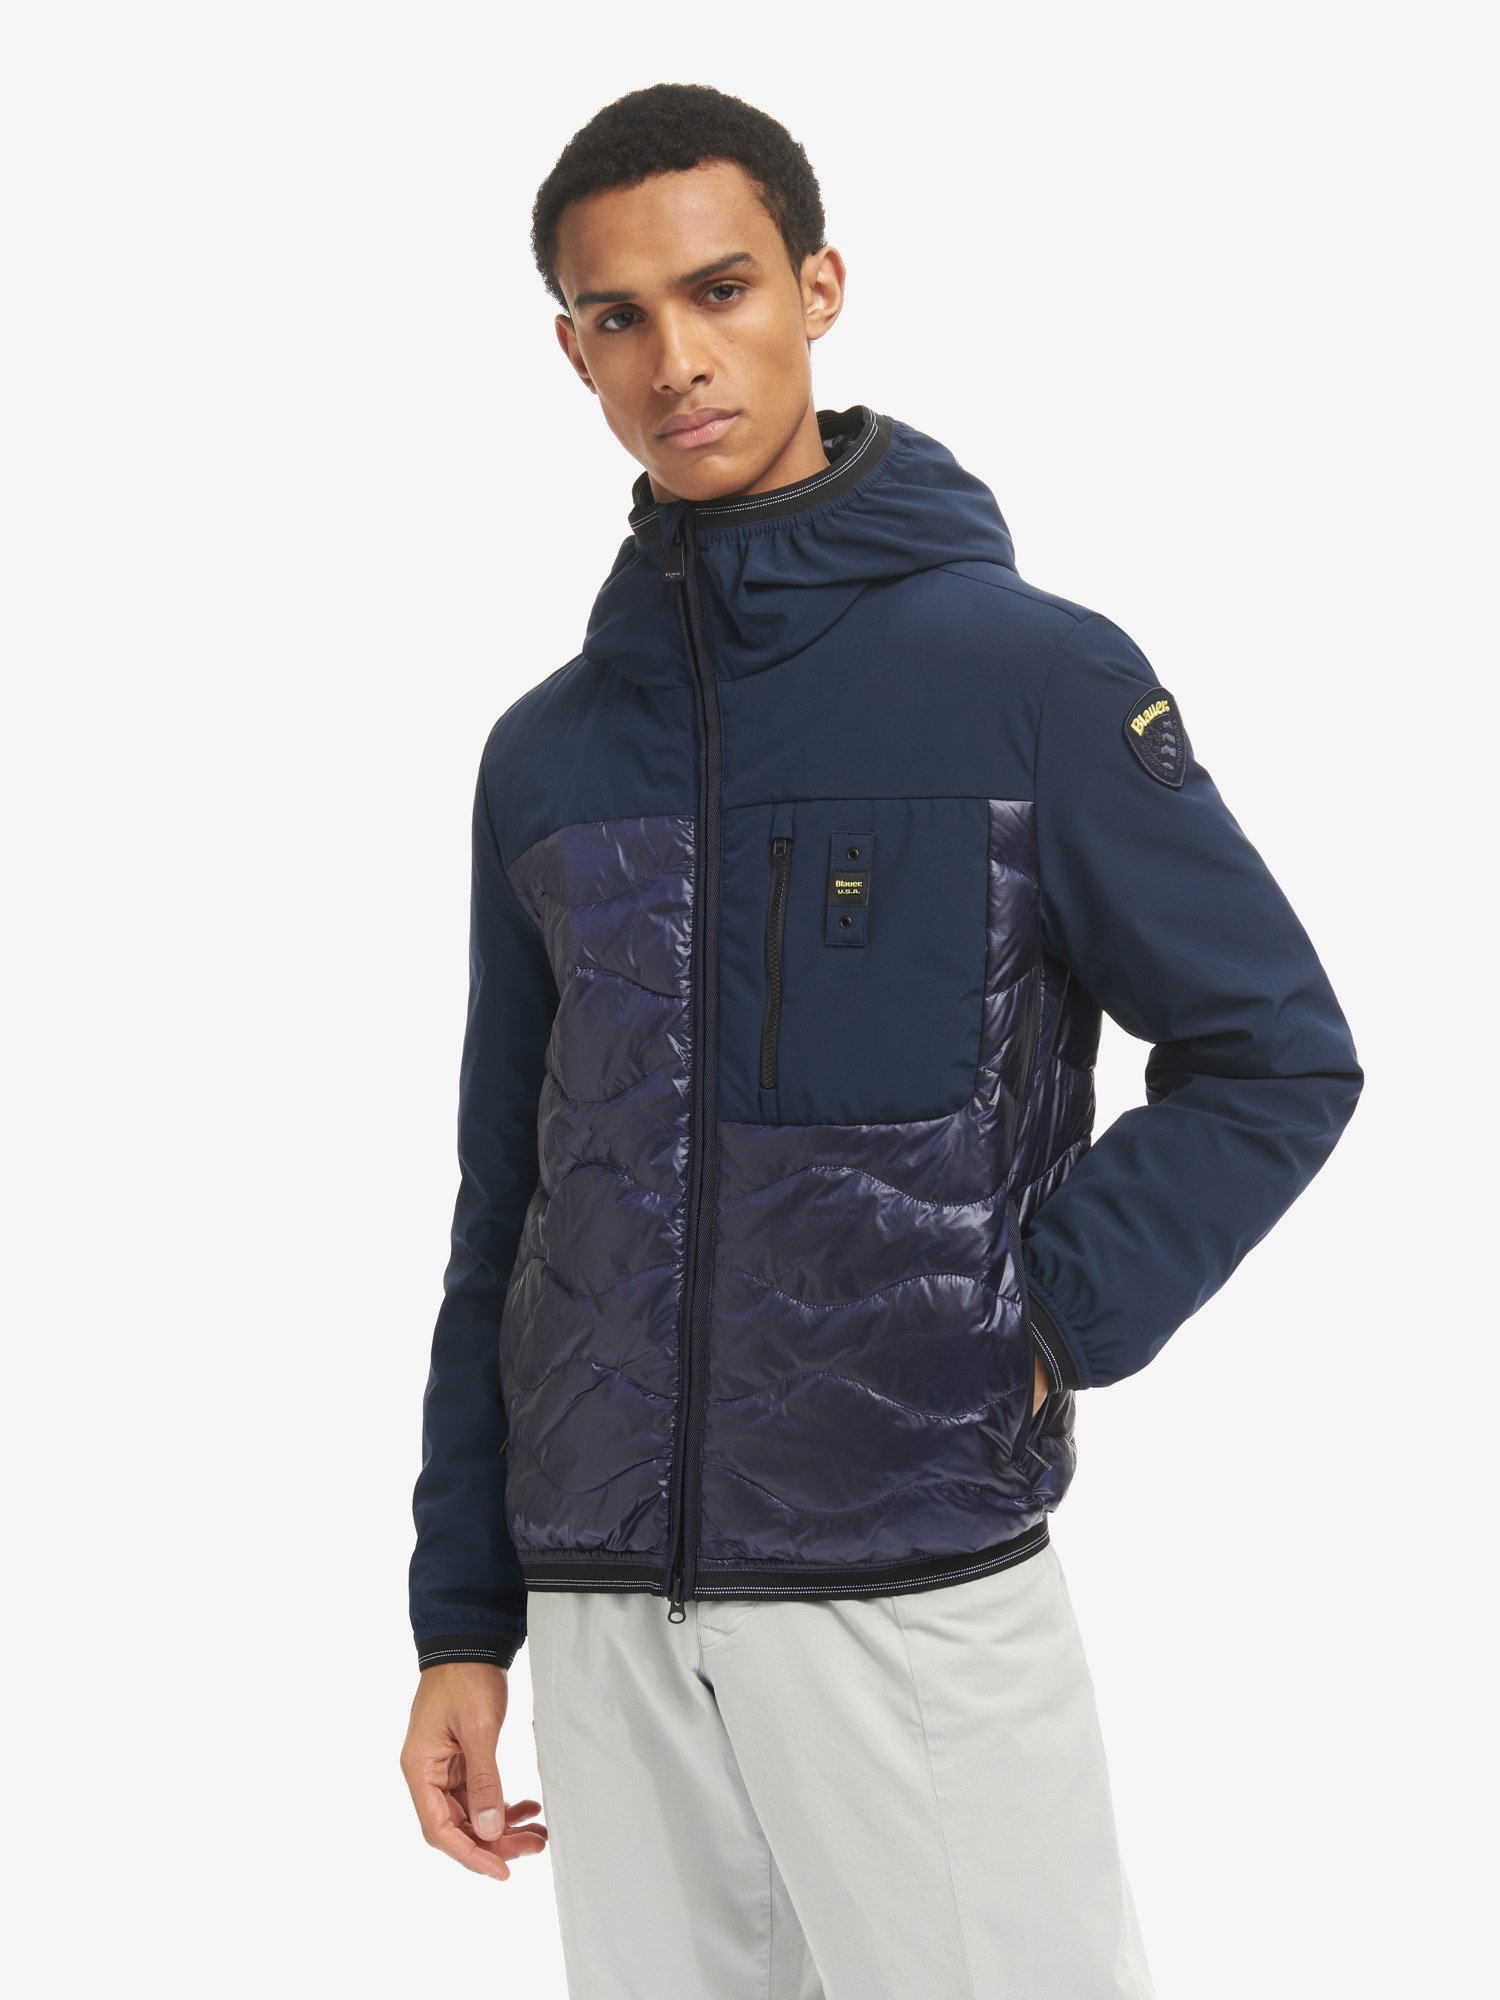 FRANCISCO DUO SMOOTH AND WAVE DOWN JACKET - Blauer